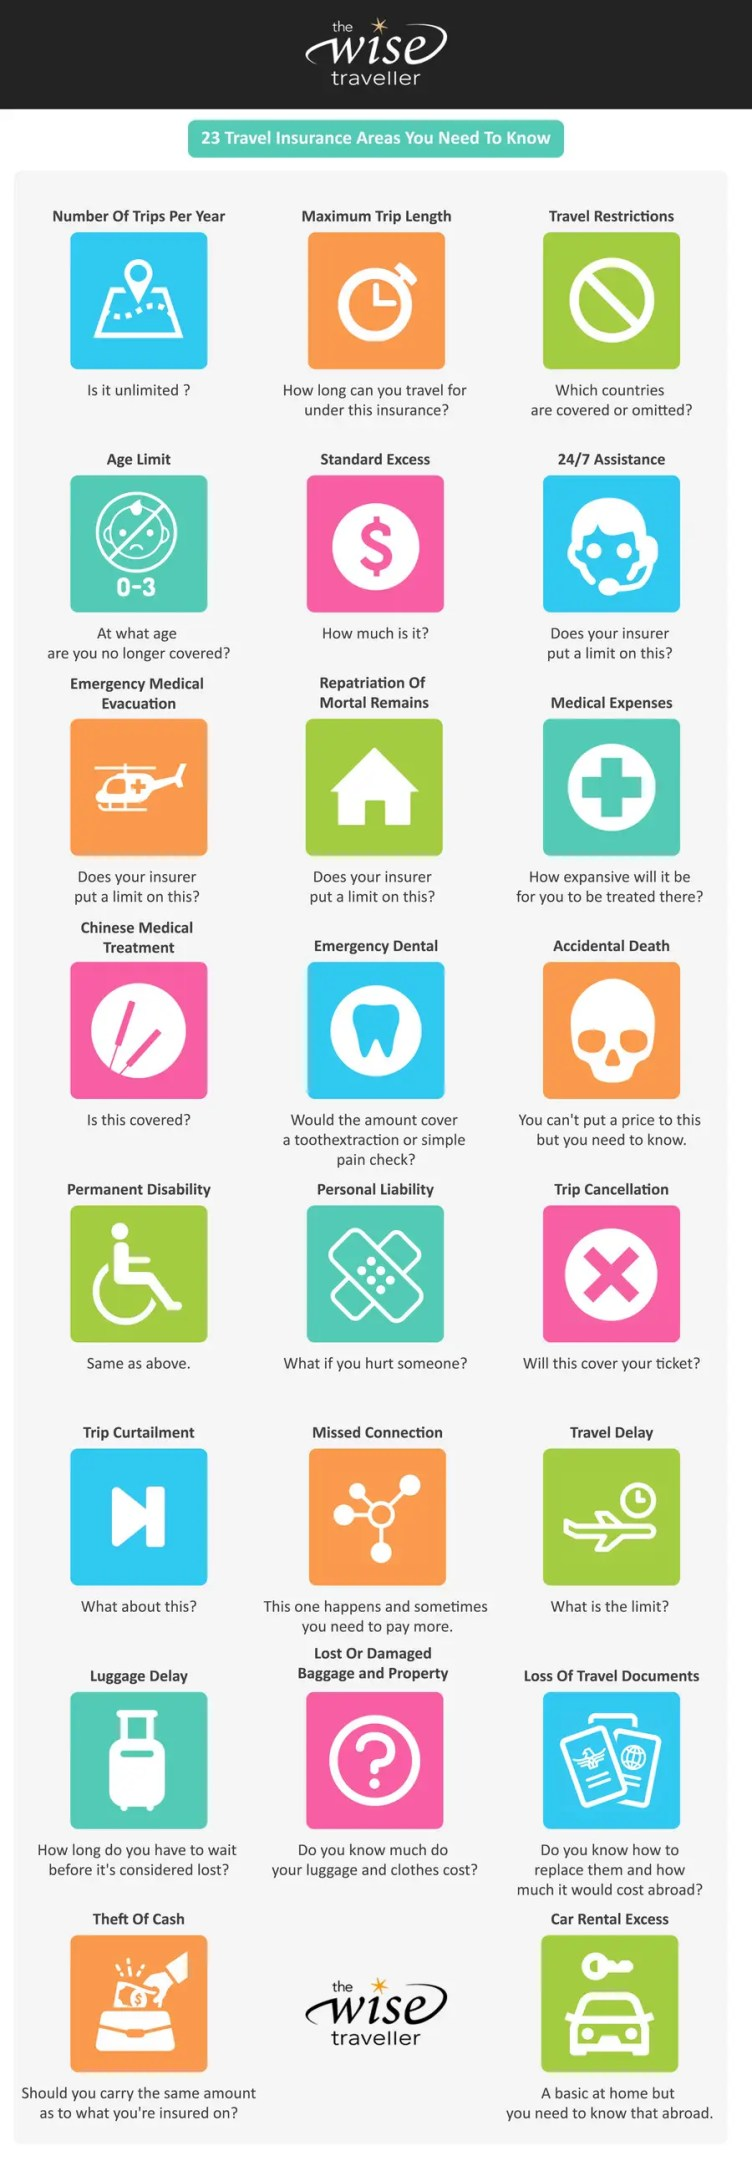 travel insurance areas you need to know